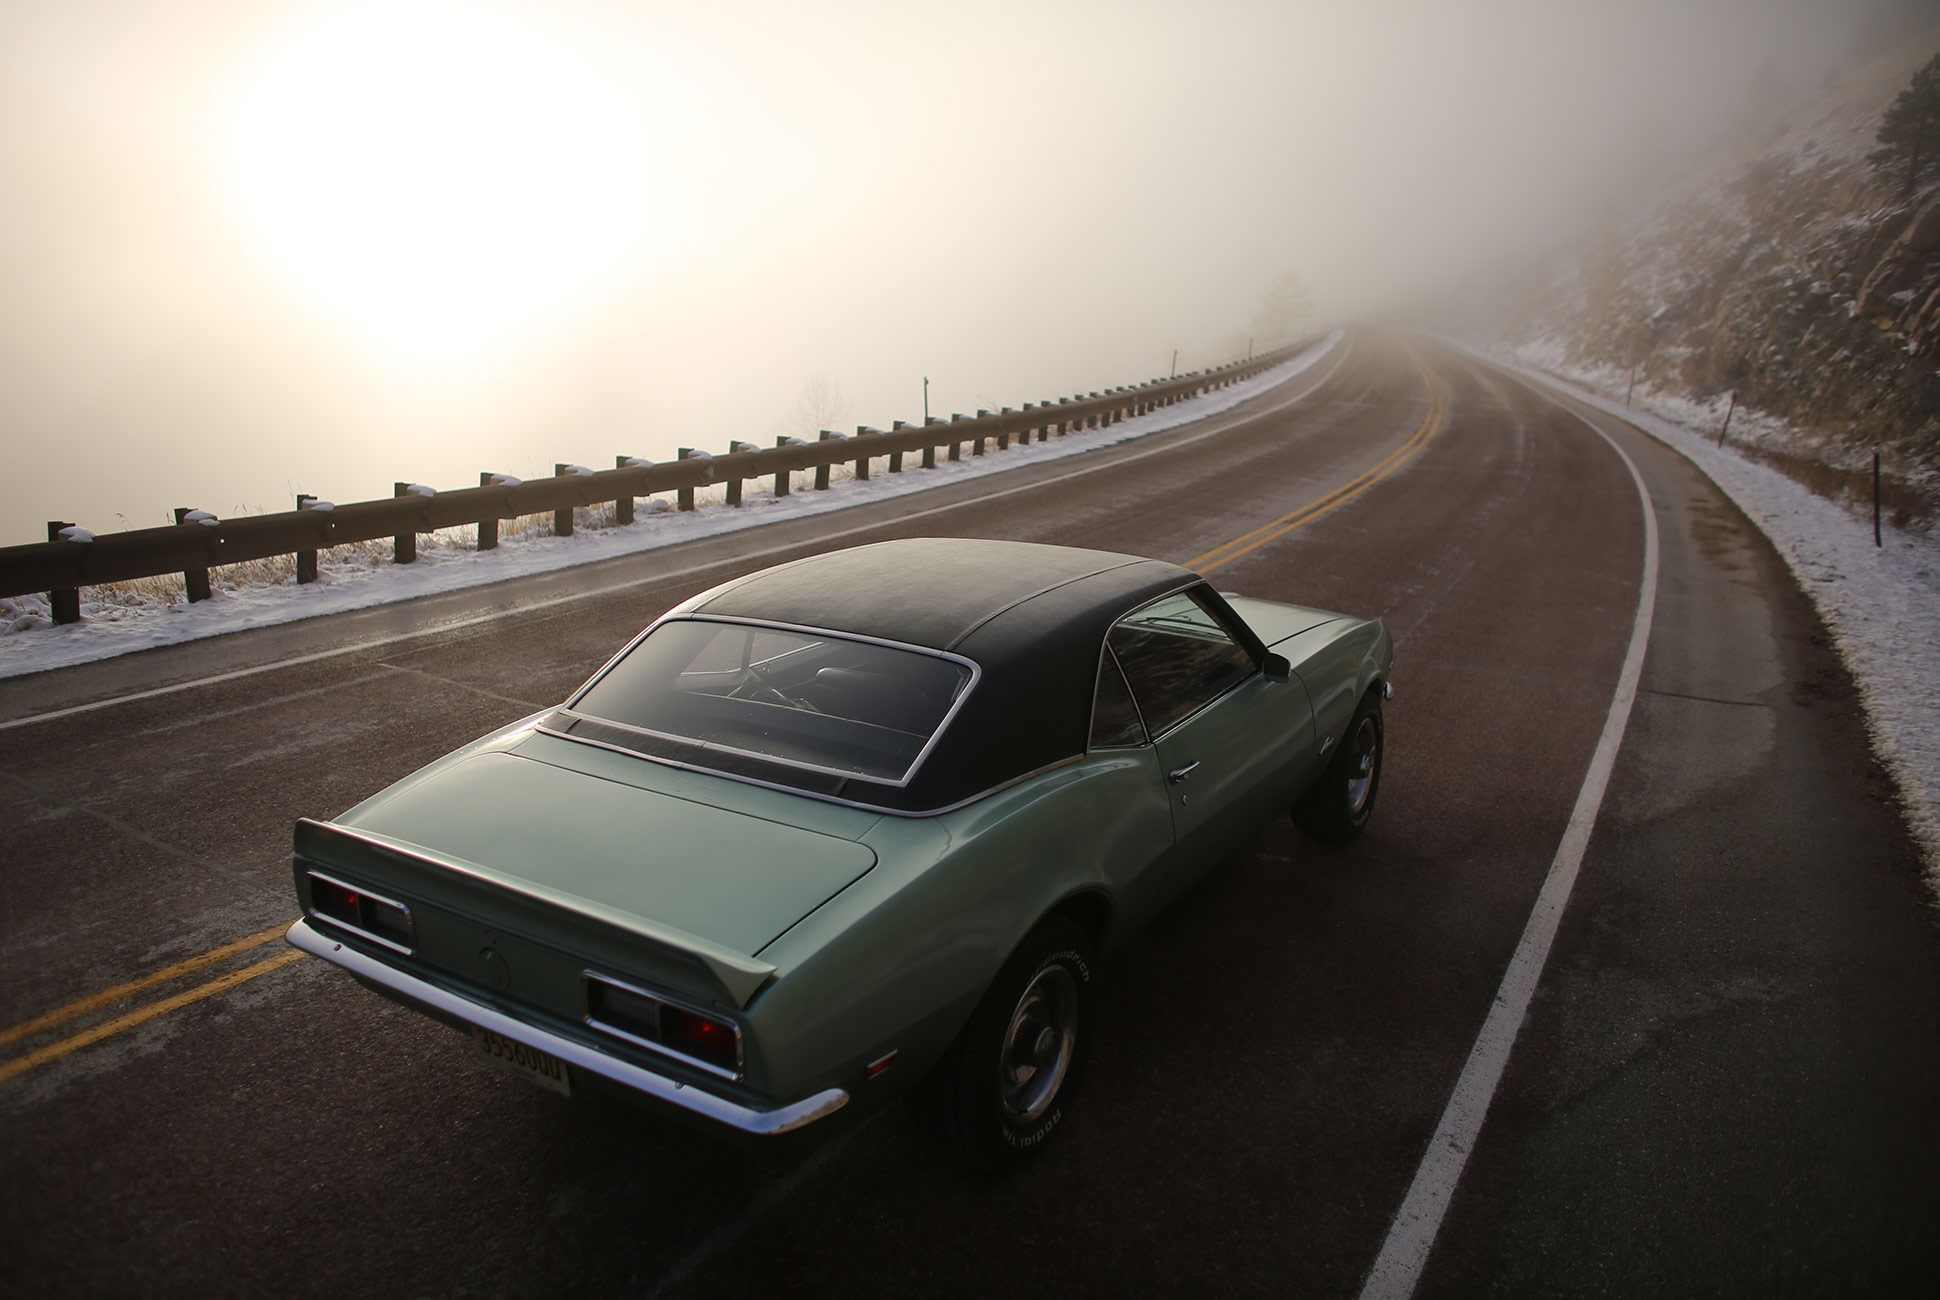 Best Road Trip Car: The Ultimate Road Trip And A 1967 Chevy Camaro €� Gear Patrol